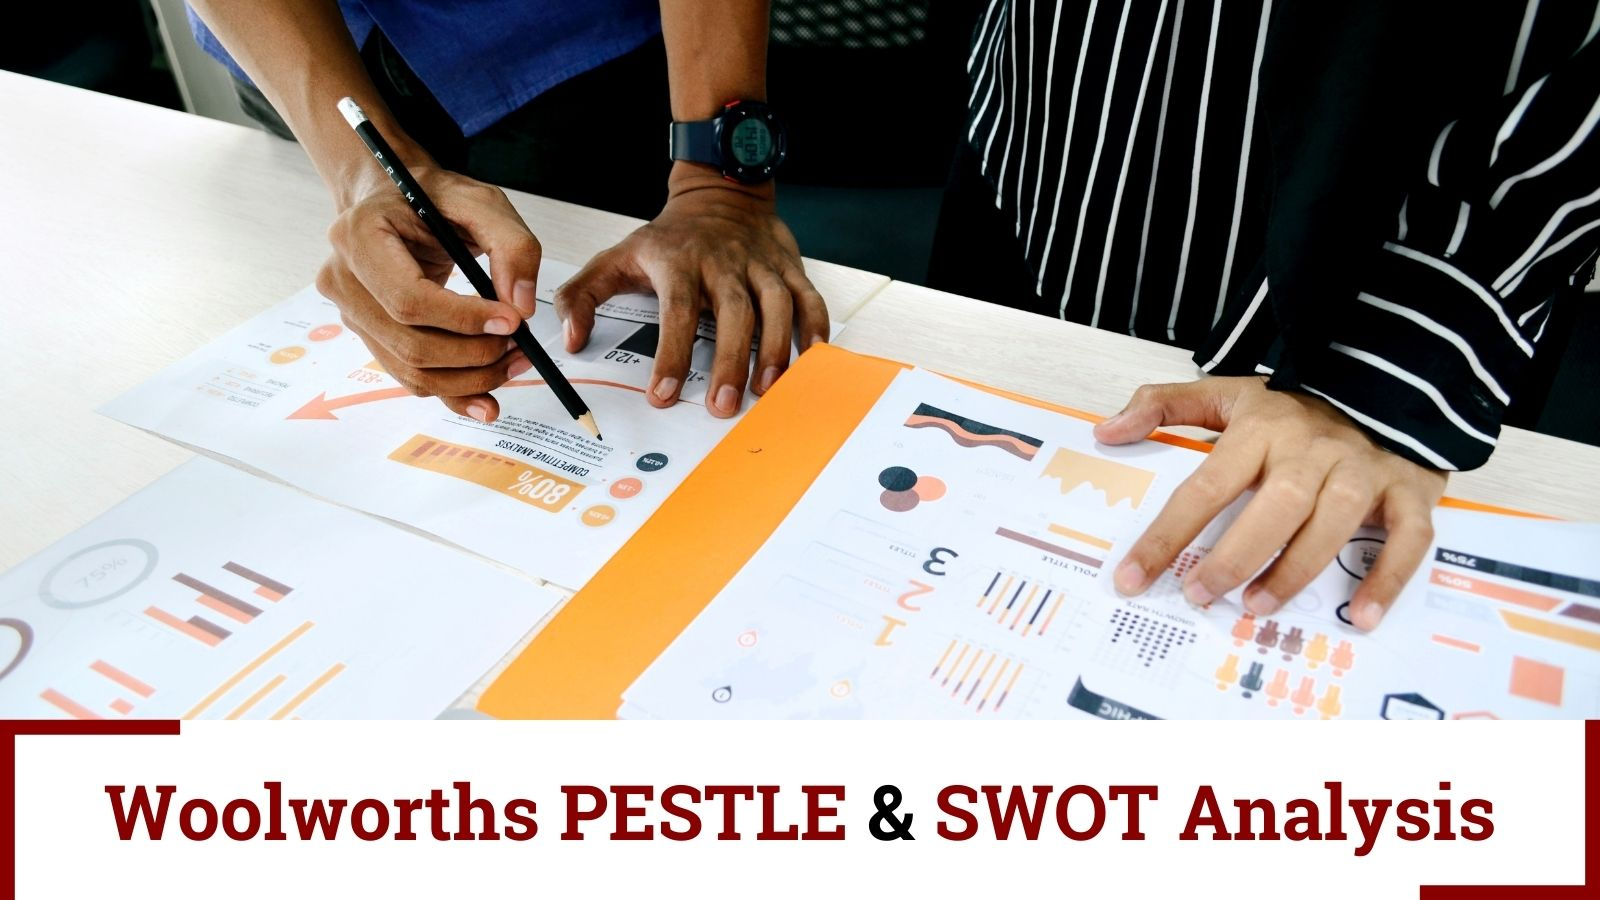 woolworths pestle and swot analysis